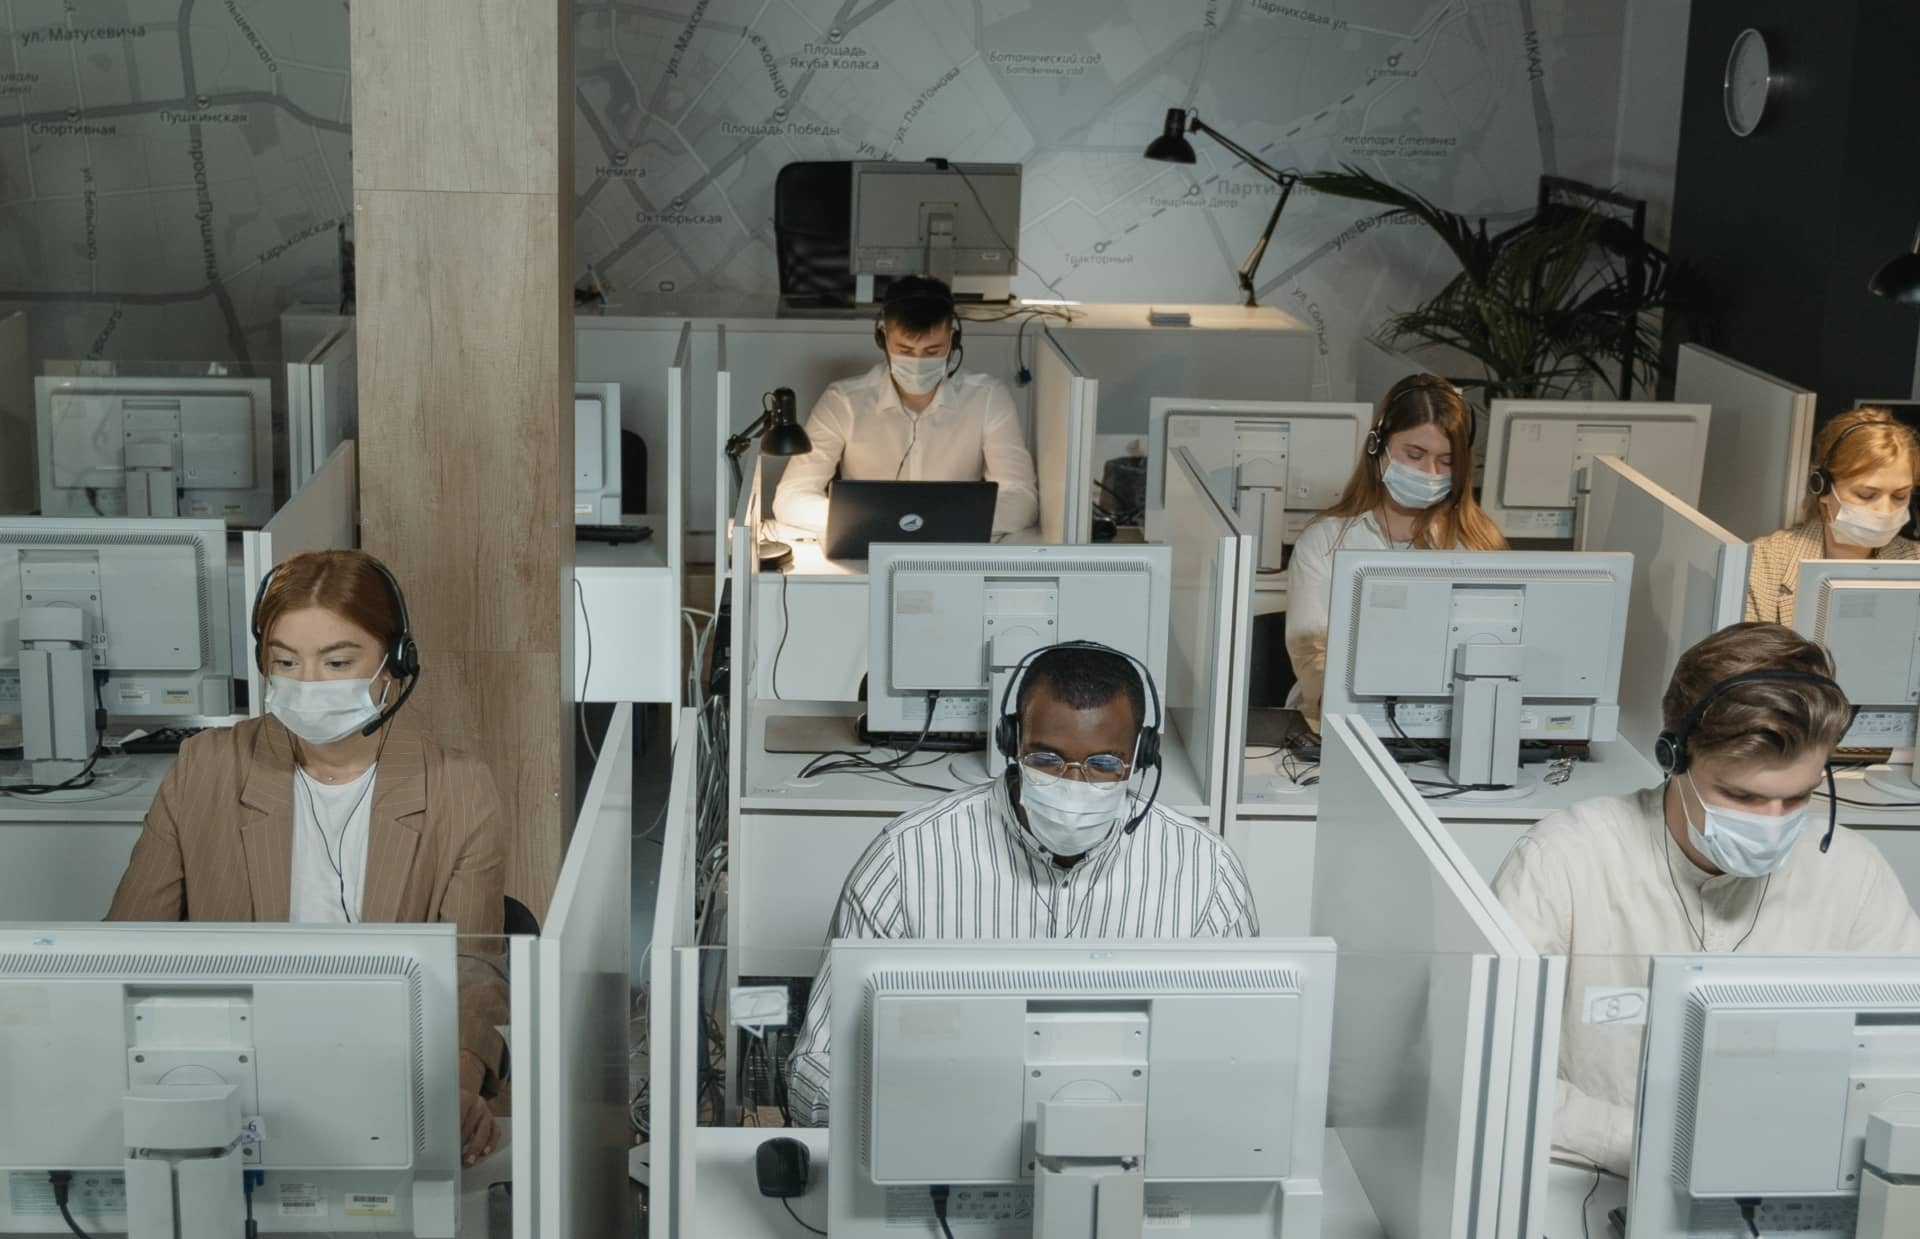 cubicles with people wearing masks